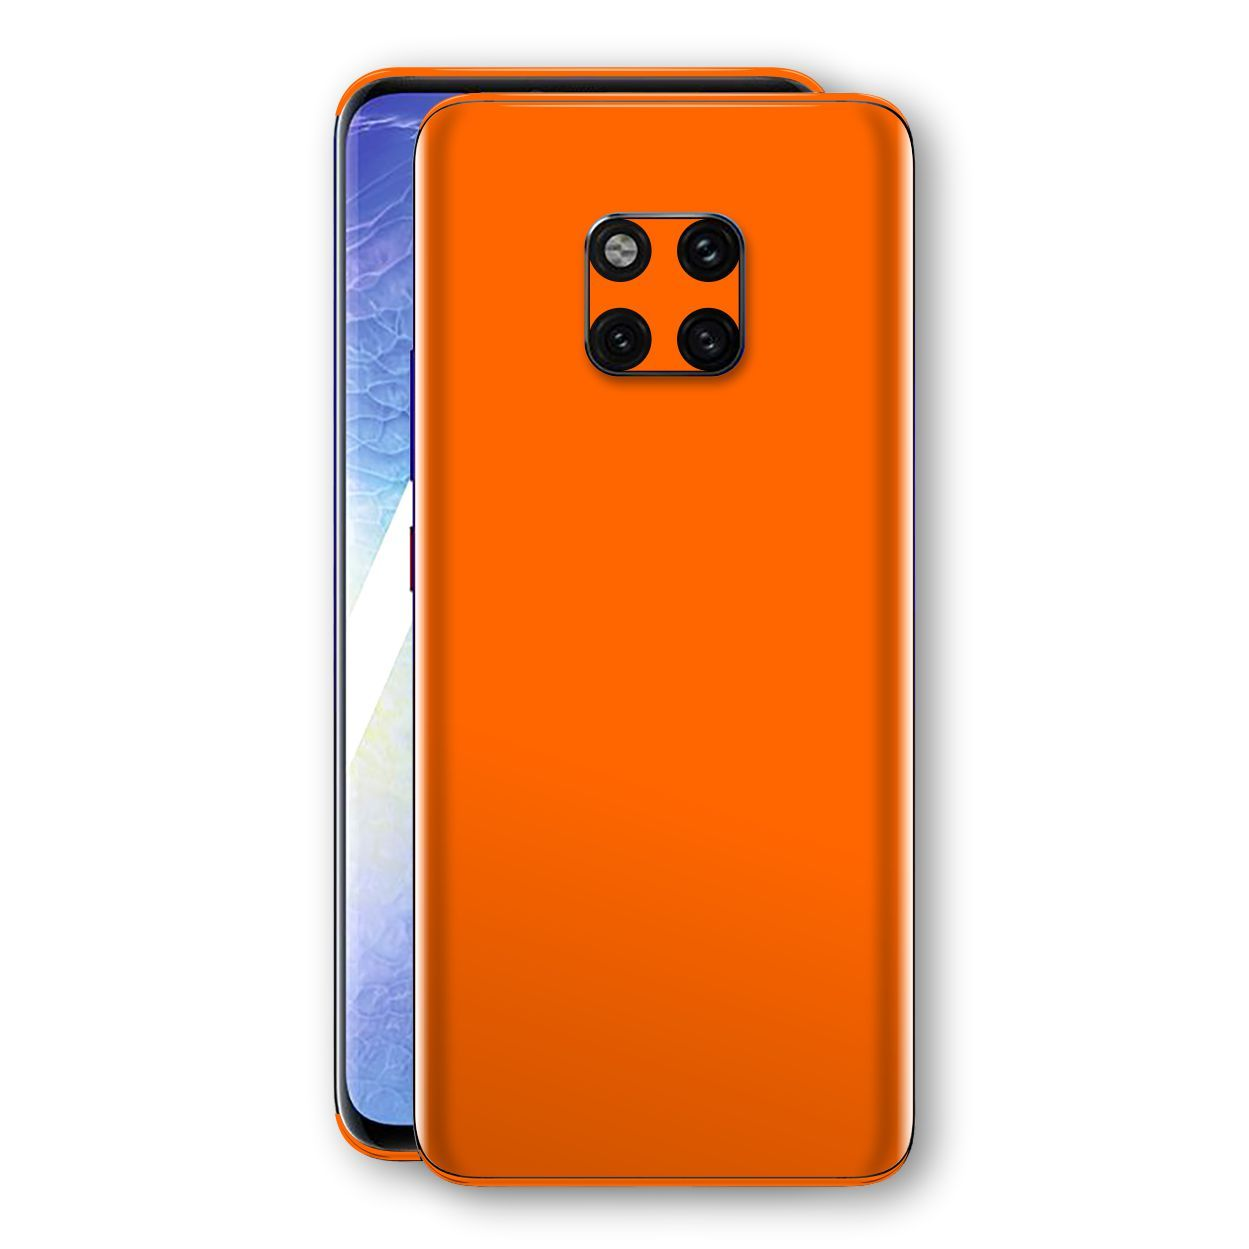 Huawei MATE 20 PRO Orange Glossy Gloss Finish Skin, Decal, Wrap, Protector, Cover by EasySkinz | EasySkinz.com